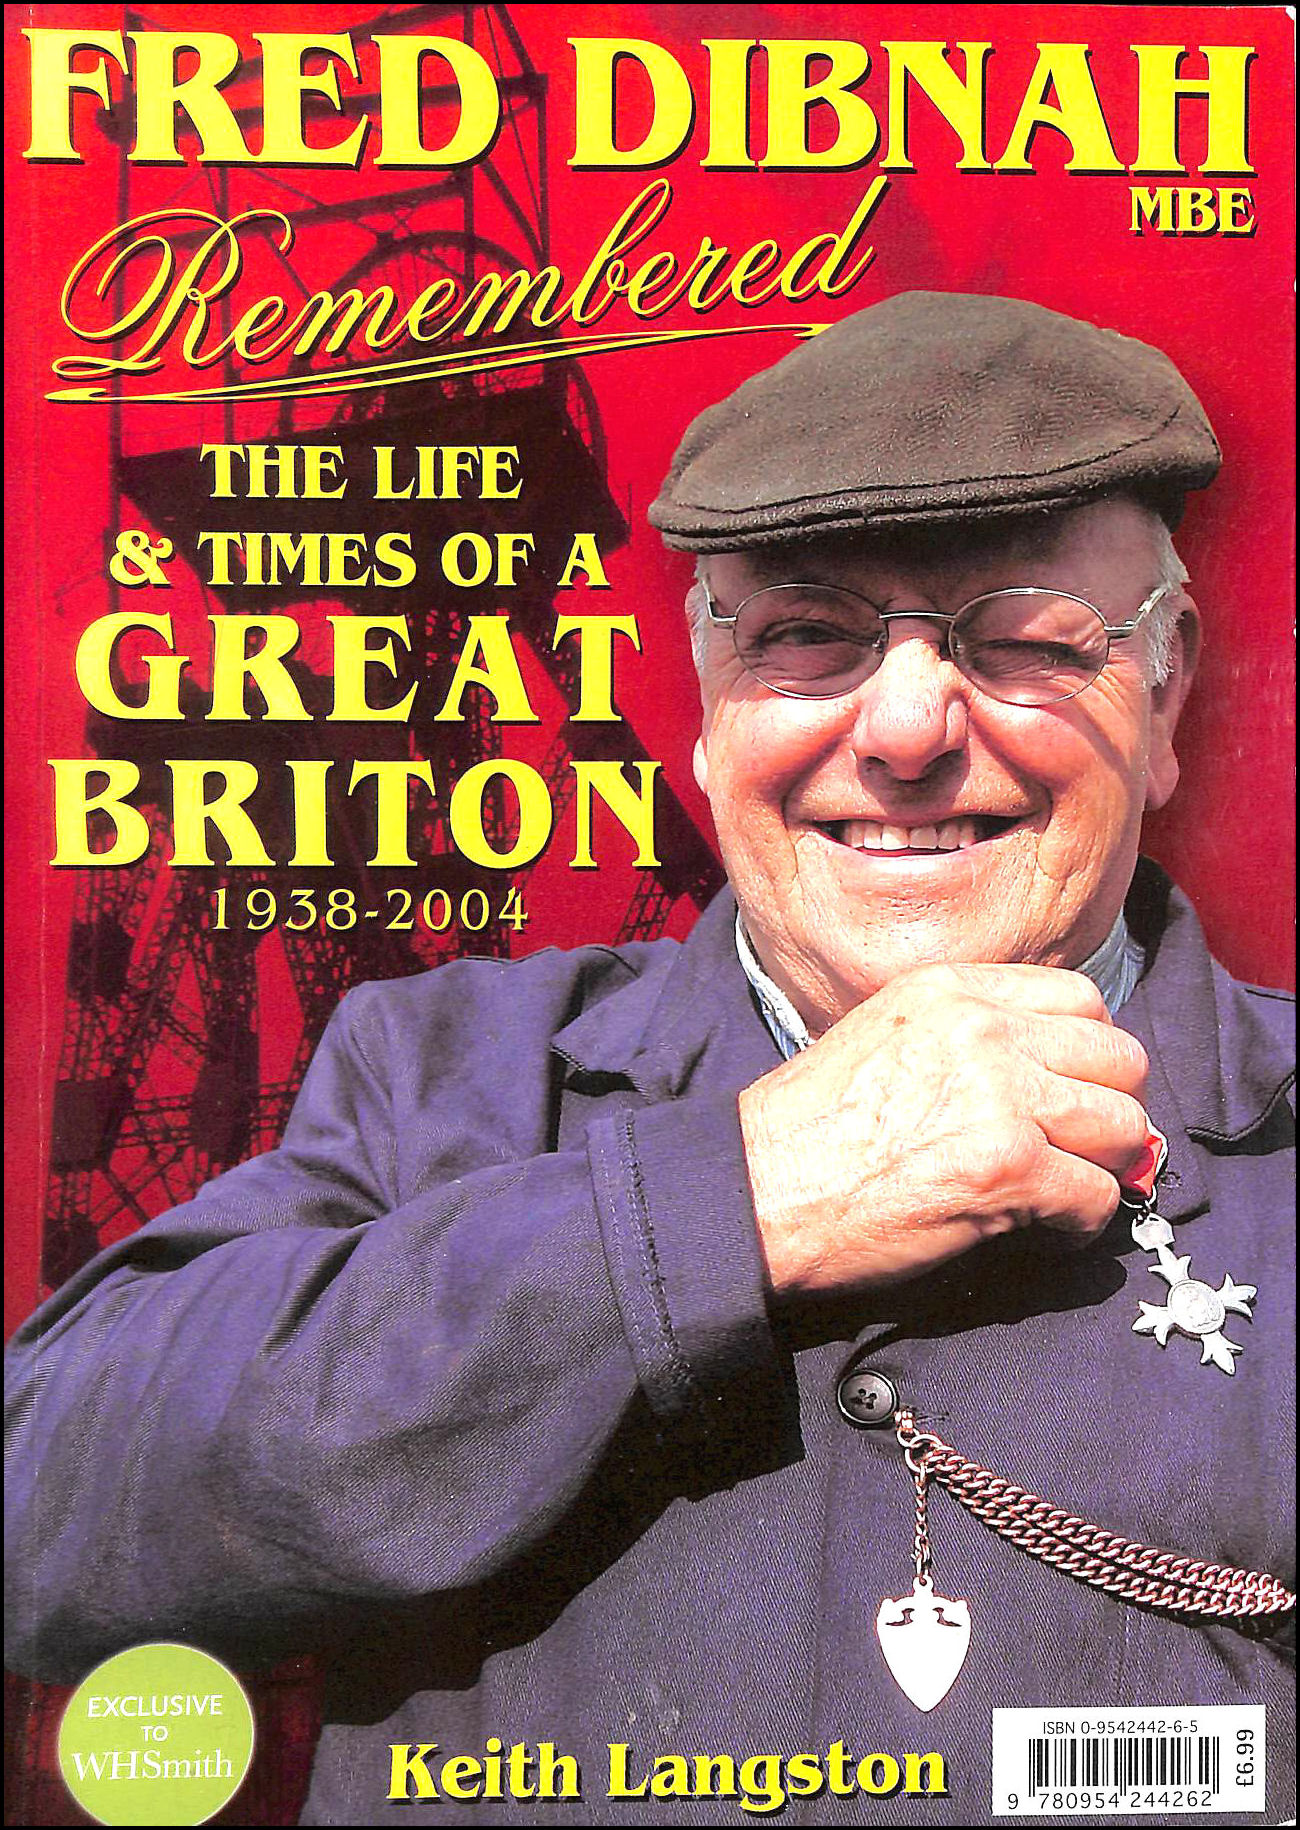 Image for Fred Dibnah Remembered: The Life and Times of a Great Briton 1938-2004